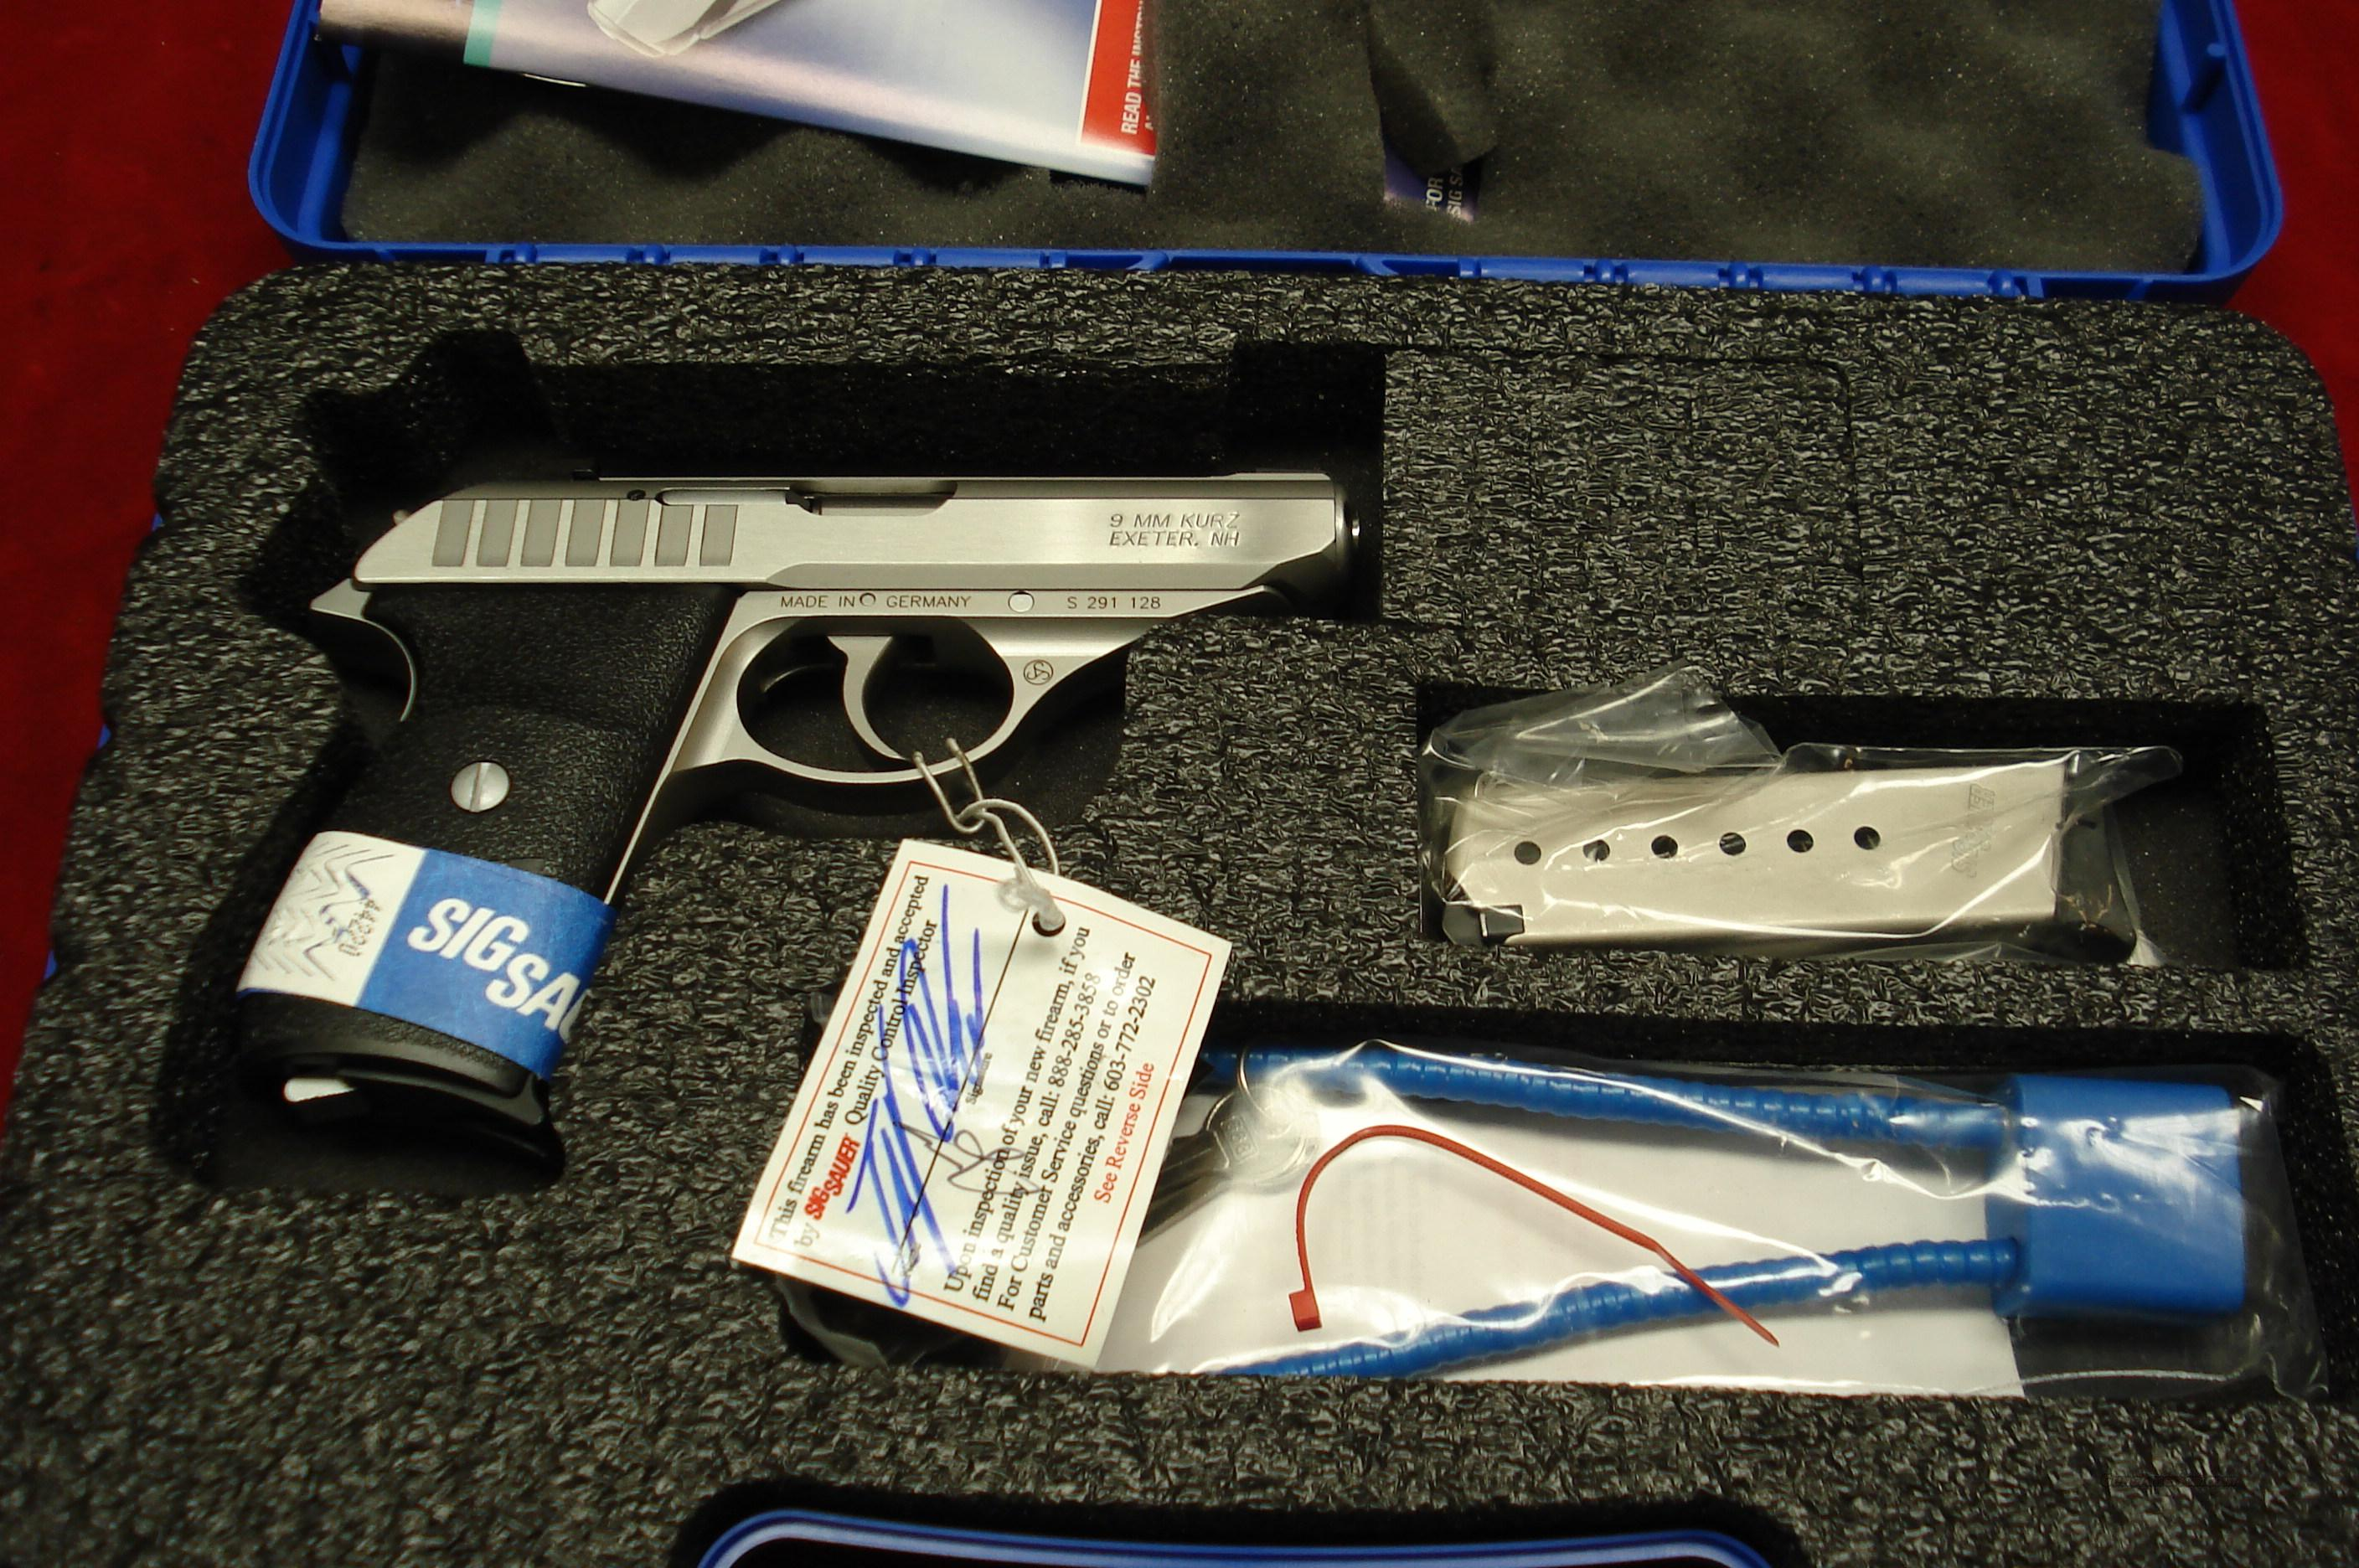 SIG SAUER P232 STAINLESS 380CAL.  NEW  Guns > Pistols > Sig - Sauer/Sigarms Pistols > Other